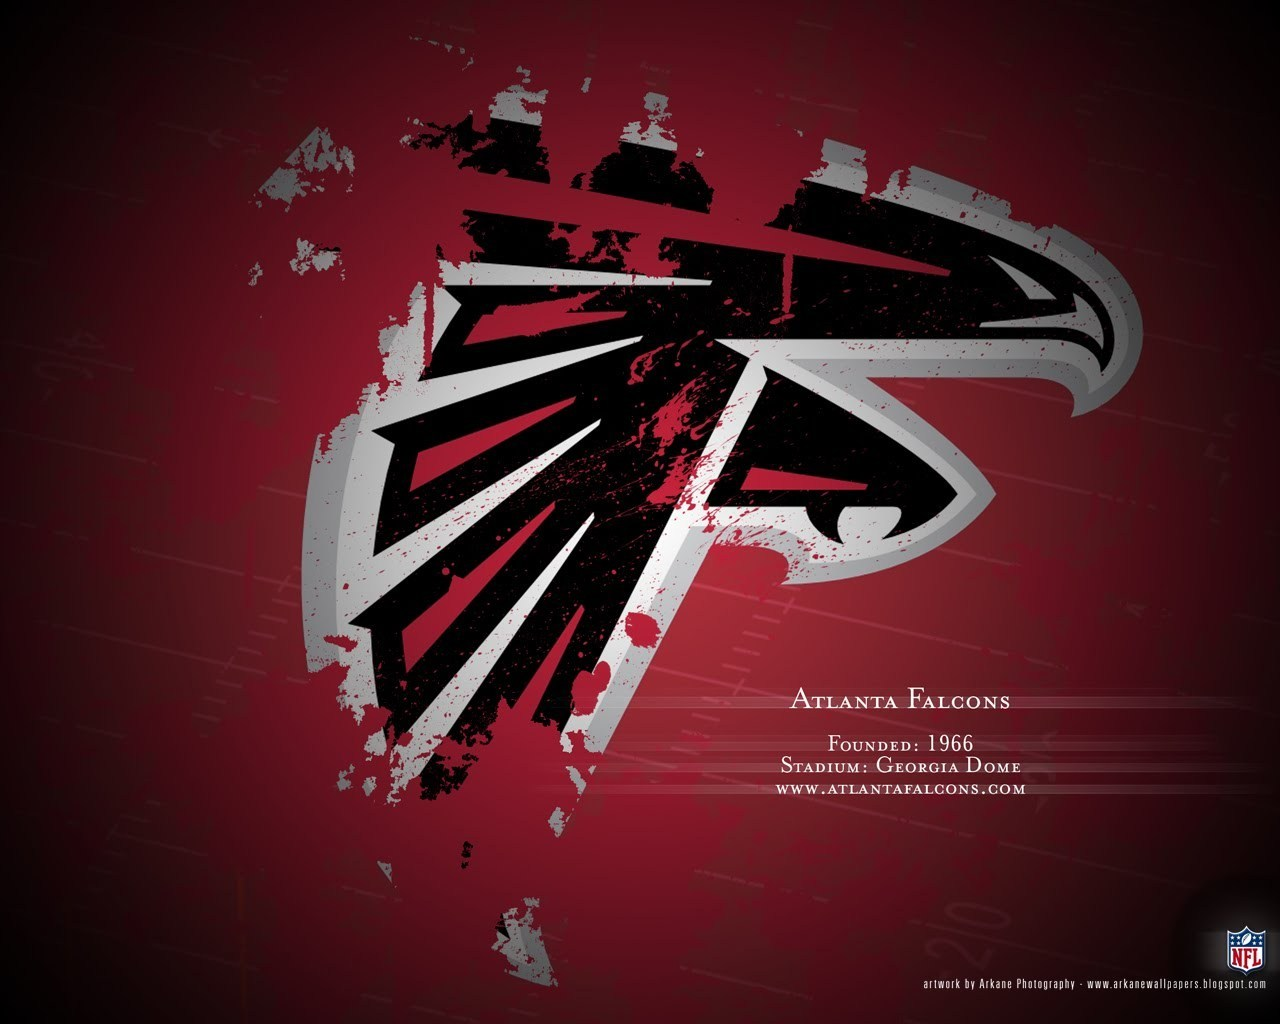 Atlanta Falcons images Atlanta Falcons HD wallpaper and background